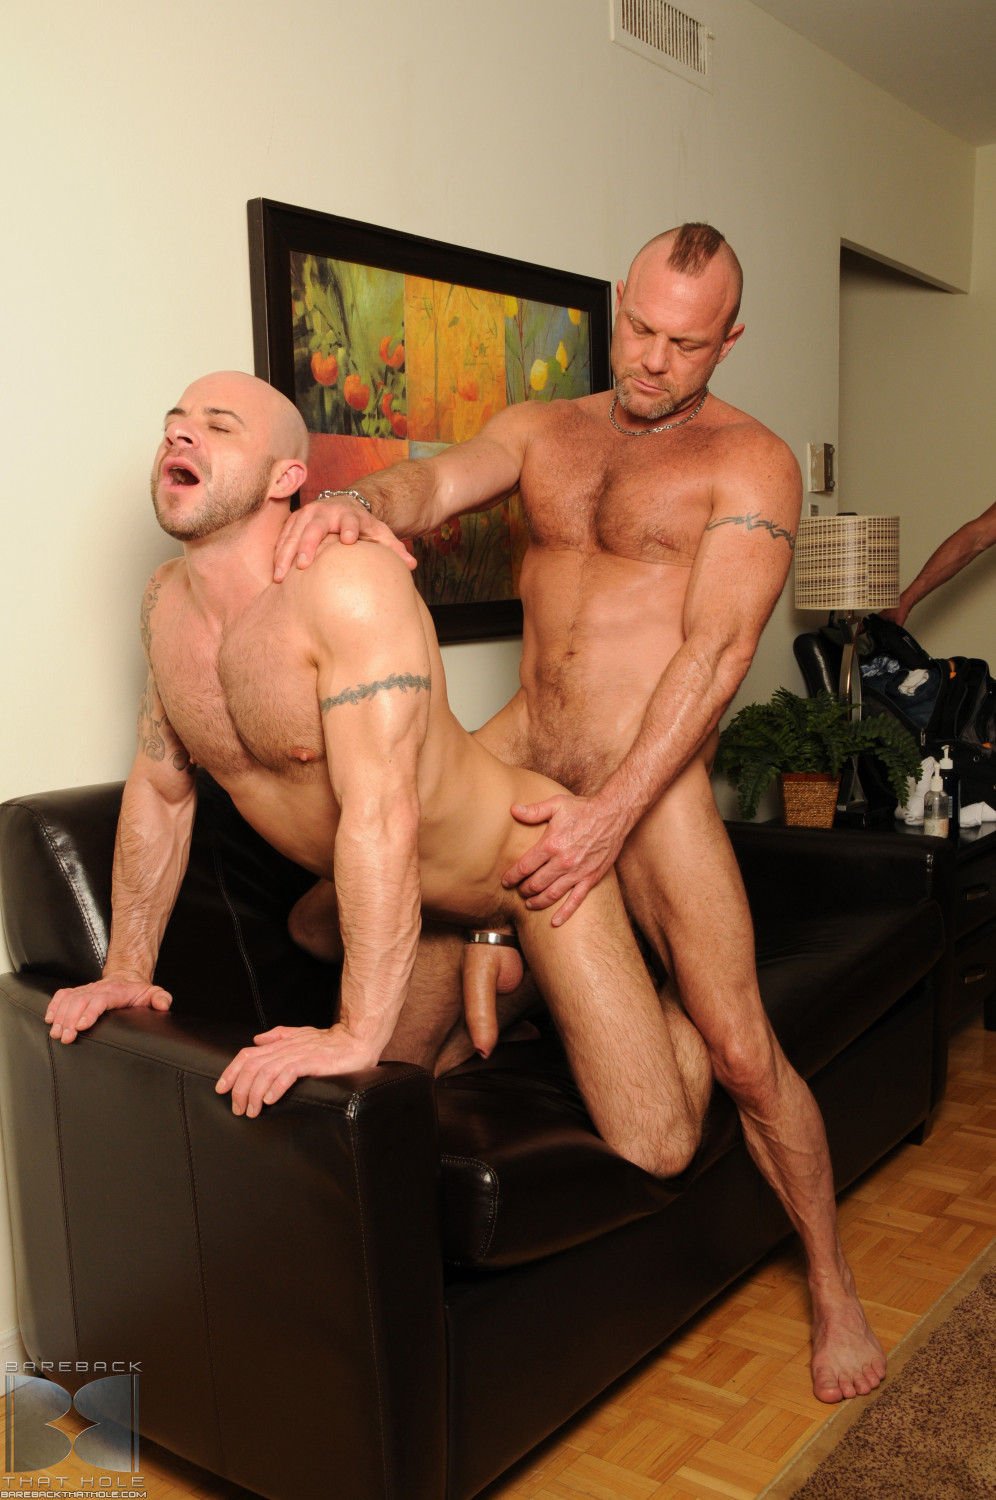 Bareback-That-Hole-Chad-Brock-and-Ben-Statham-big-uncut-cock-12 Bareback Fucking A Hot Hairy Uncut Bottom